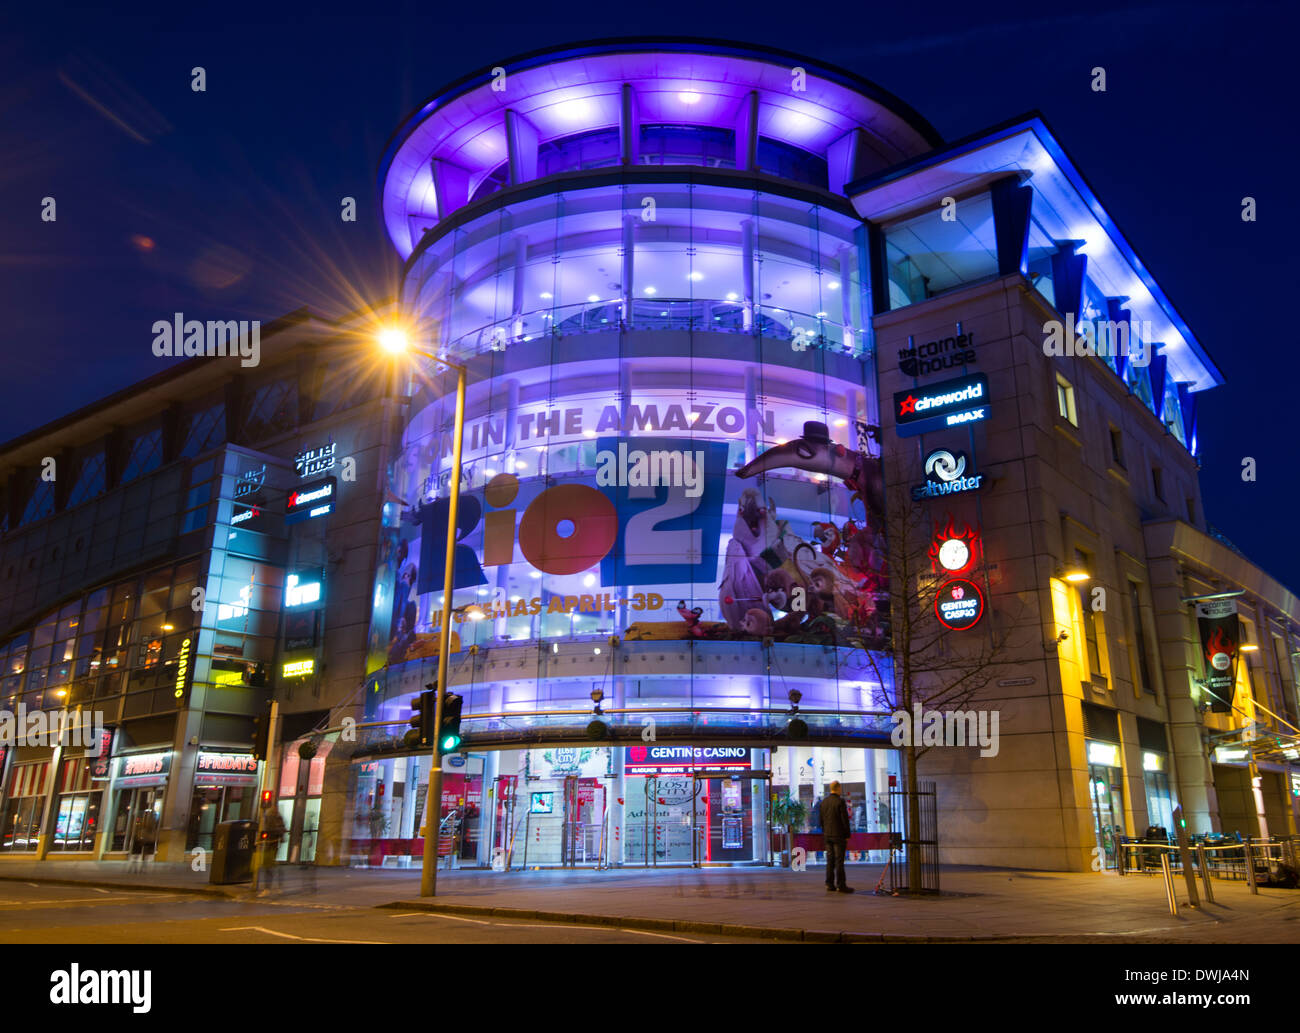 Casino nottingham cornerhouse waverly casino louisiana